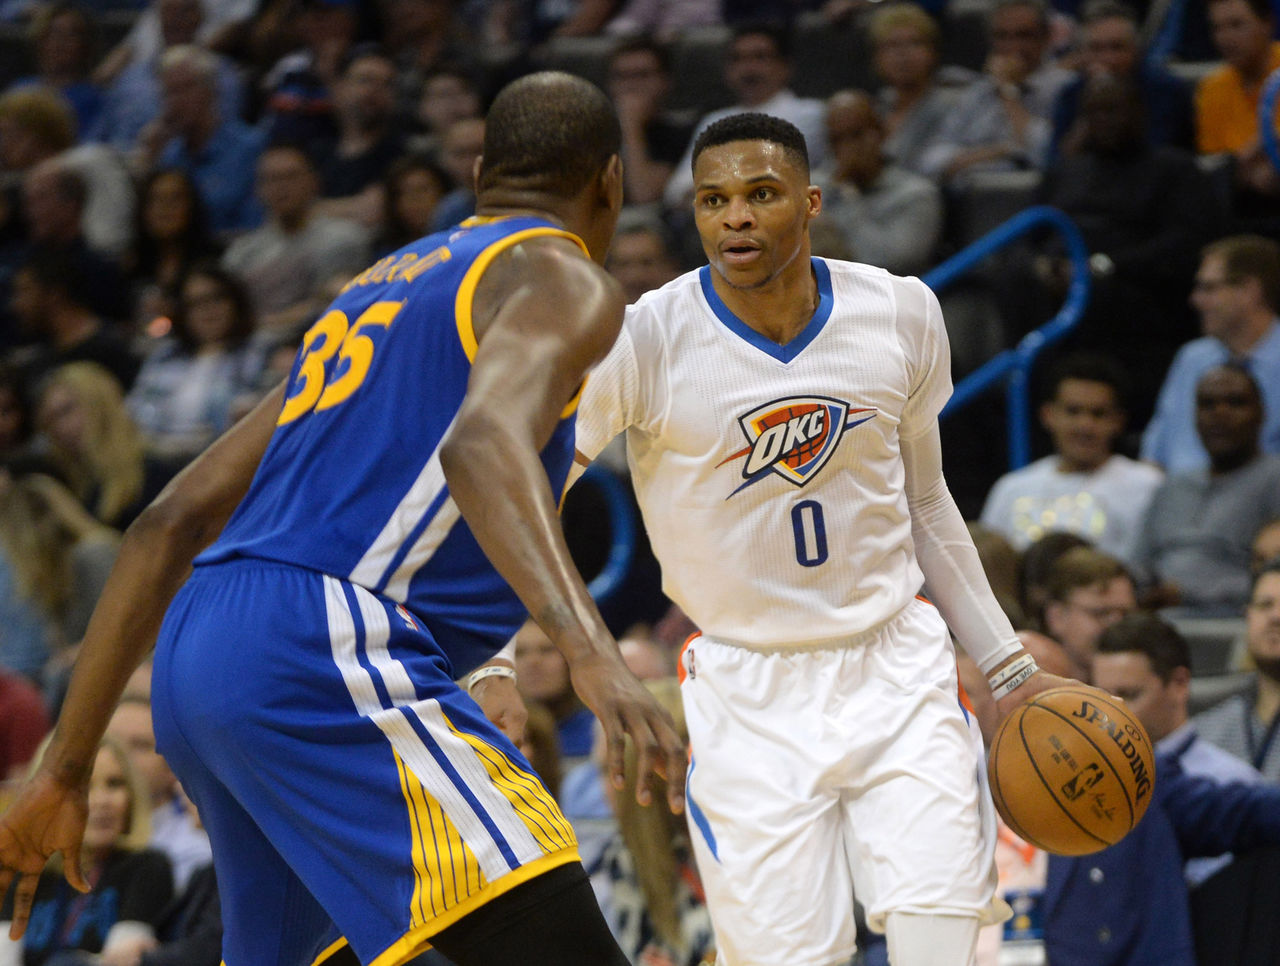 Cropped 2017 02 12t044310z 1753368667 nocid rtrmadp 3 nba golden state warriors at oklahoma city thunder